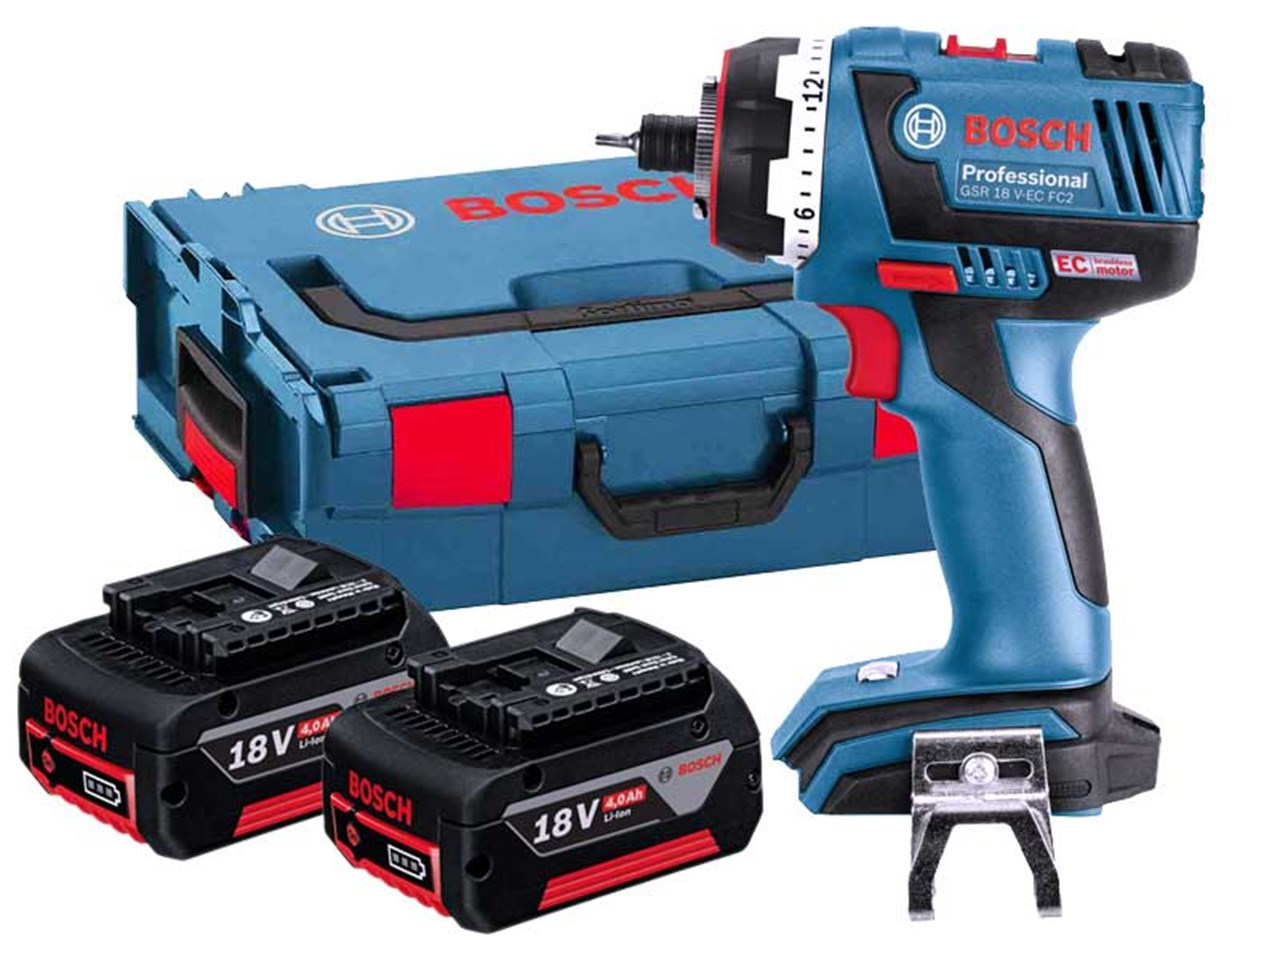 bosch gsr18vecfc2 18v cordless drill flexiclick 2 x 4 0ah. Black Bedroom Furniture Sets. Home Design Ideas